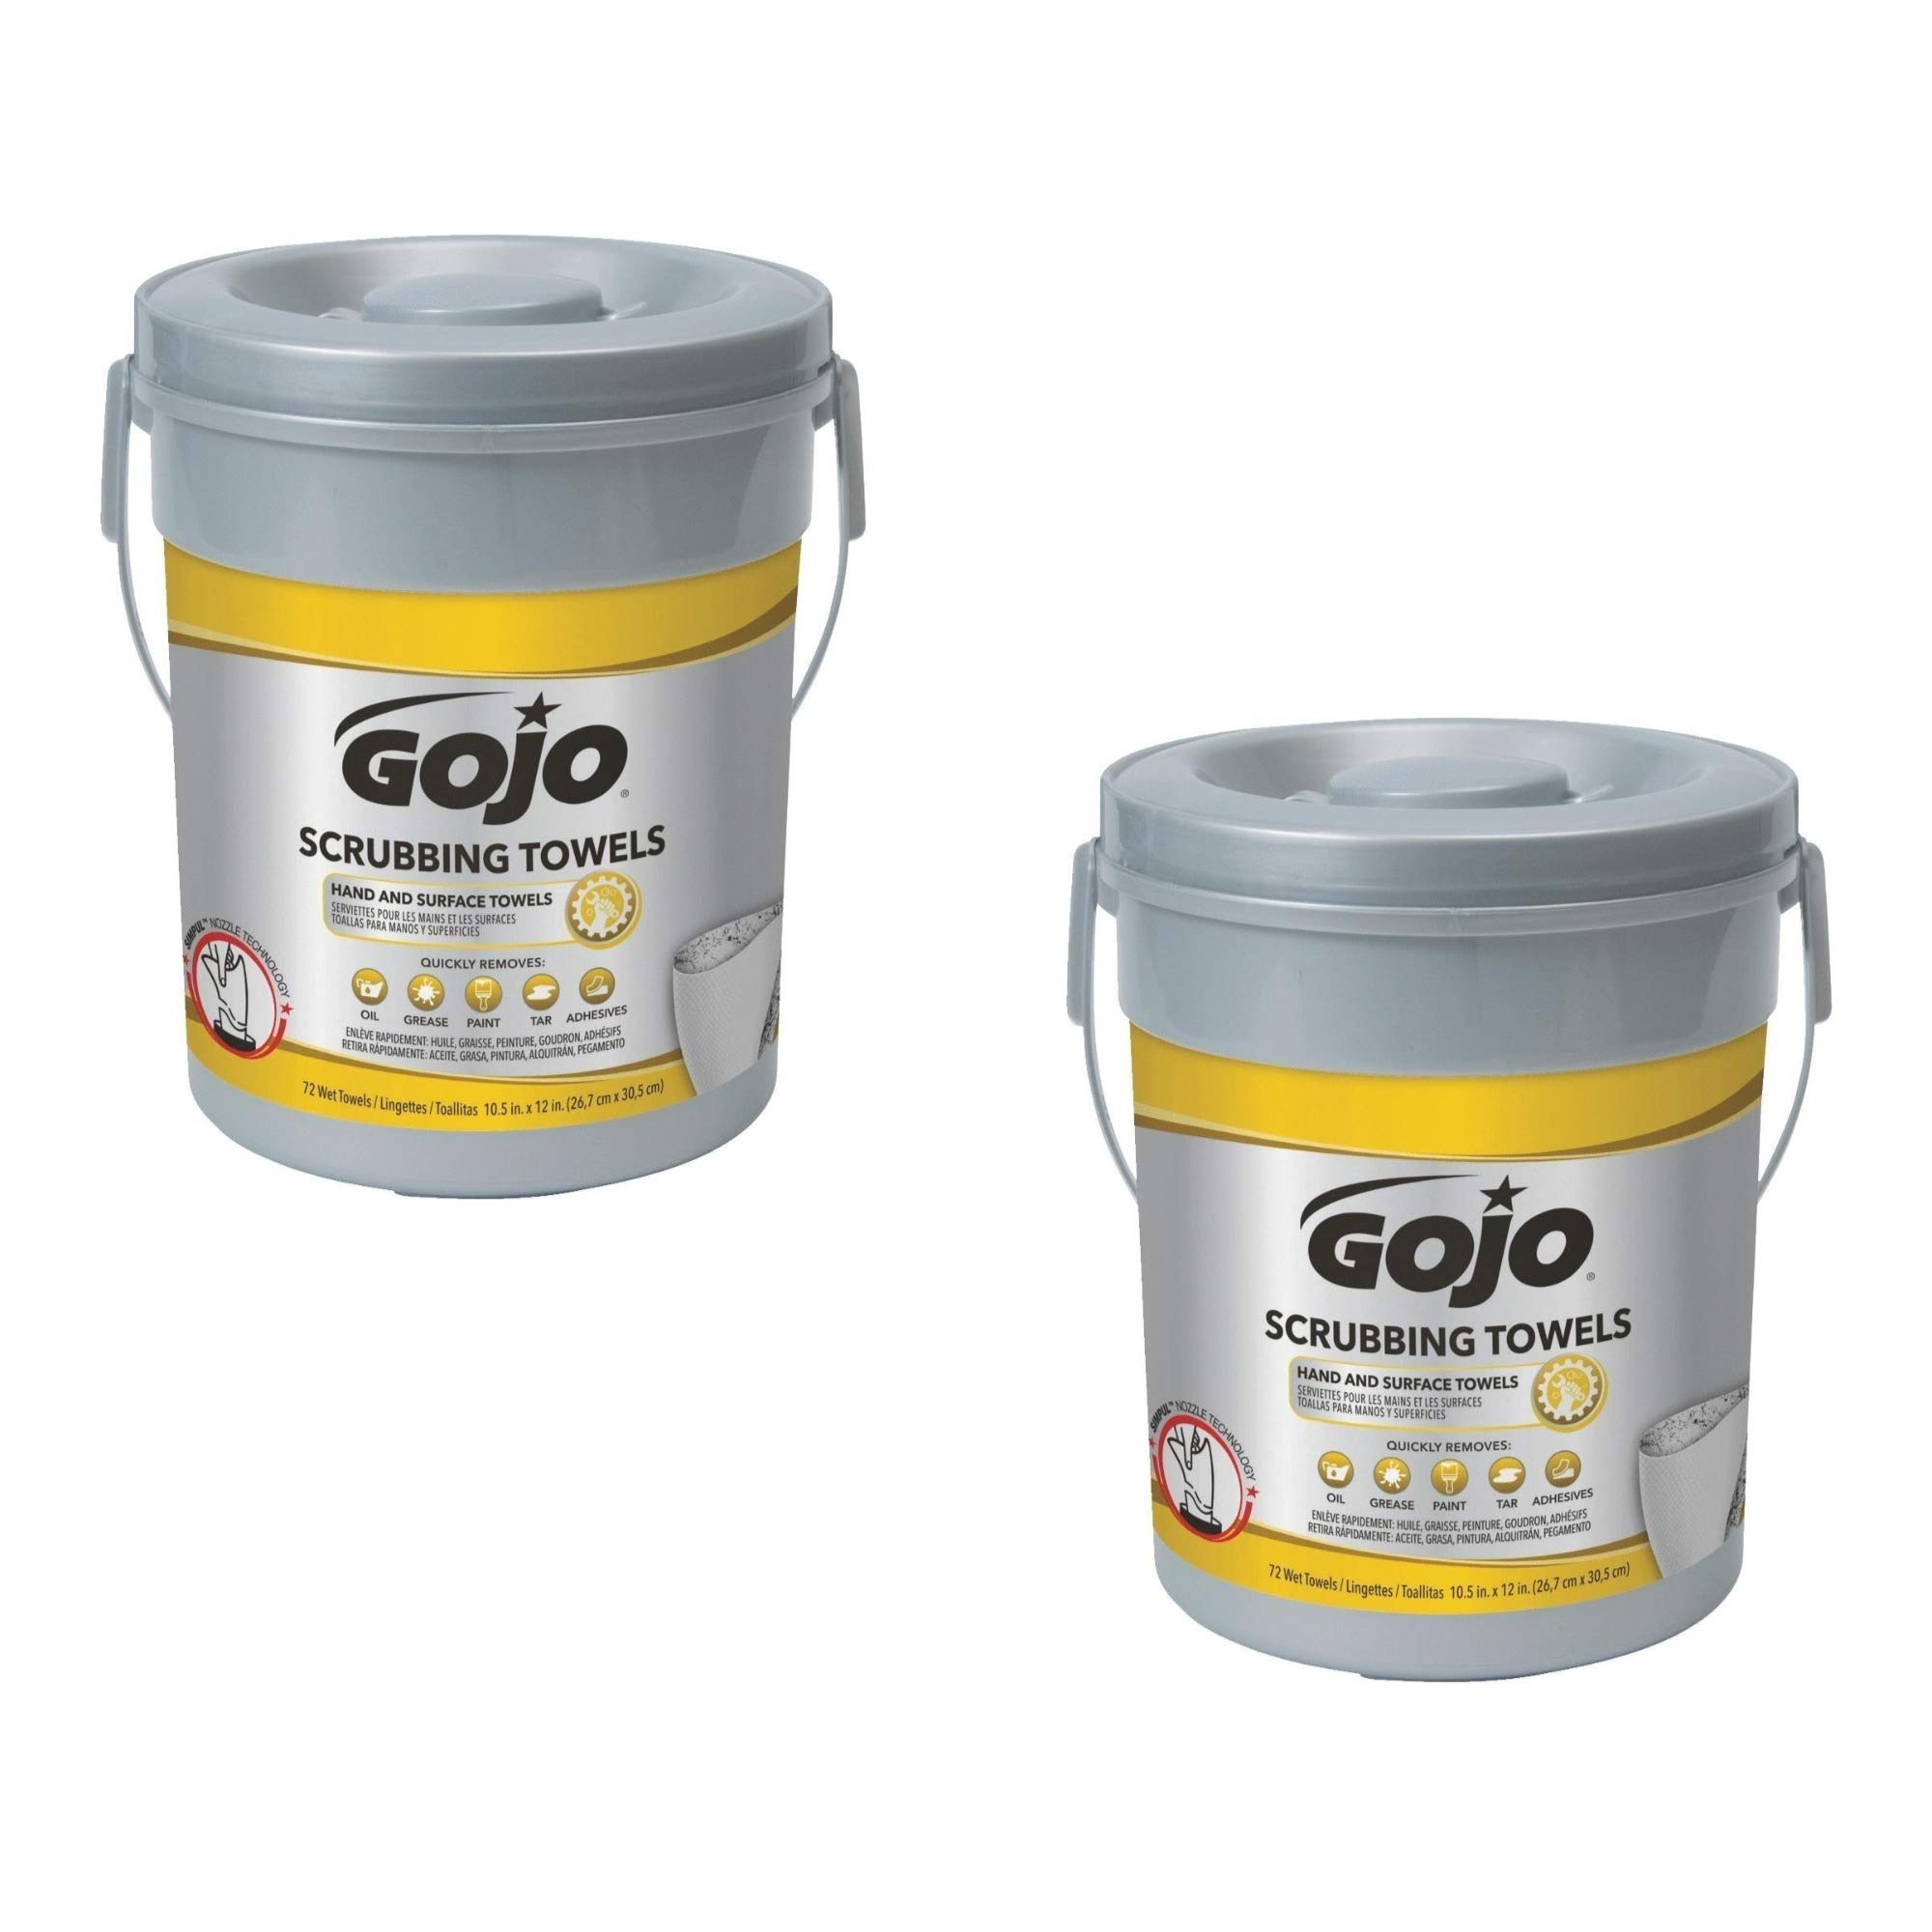 Gojo Dual Textured Scrubbing Wipes Canister 72 Wipes (2 Pack) (2) by Gojo (Image #1)